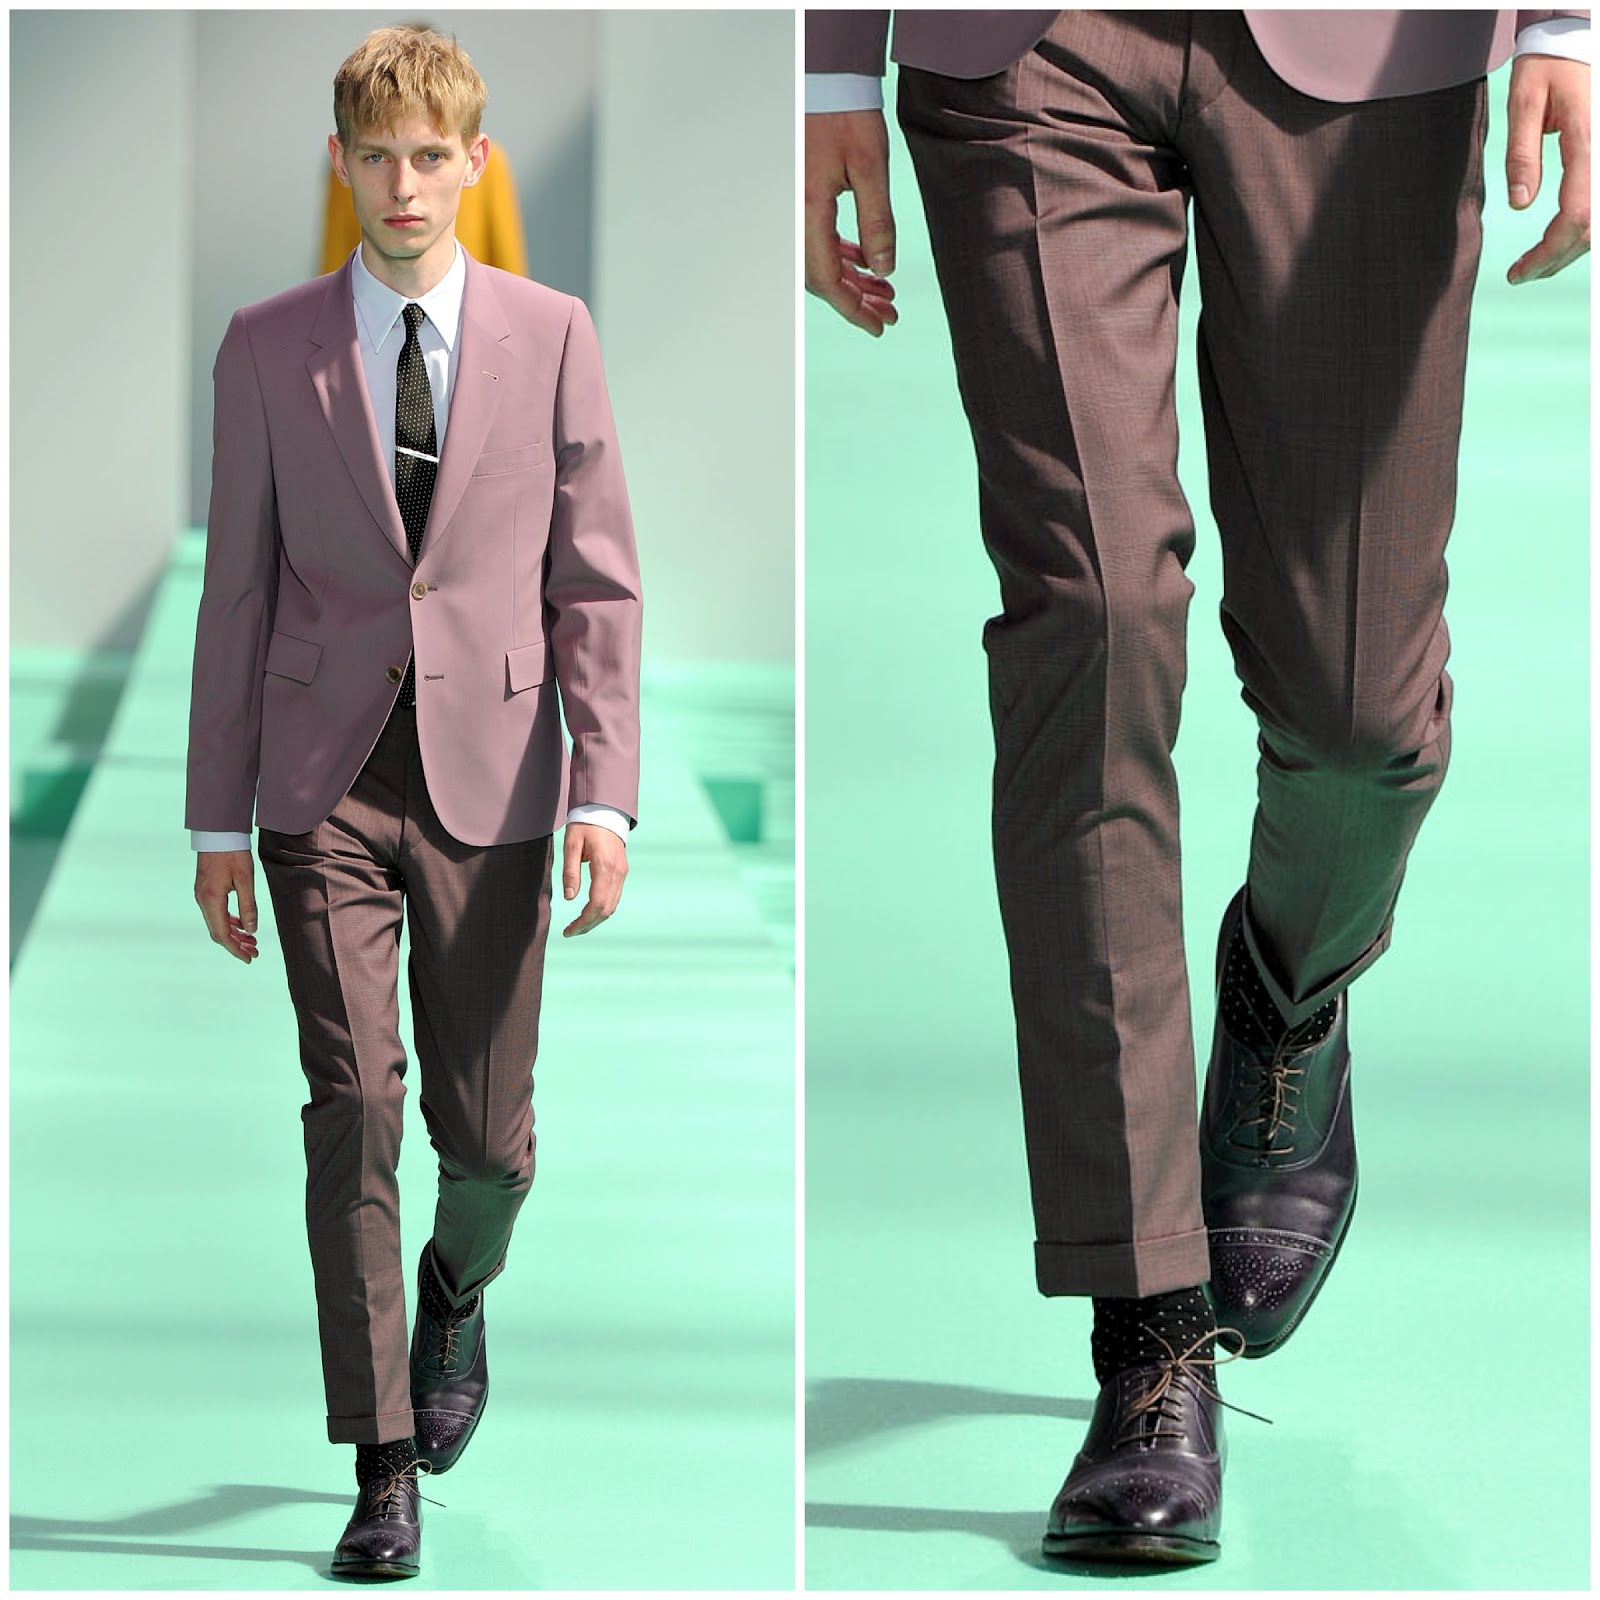 00o00 London Menswear Blog Paul Smith John Lobb Spring Summer 2013